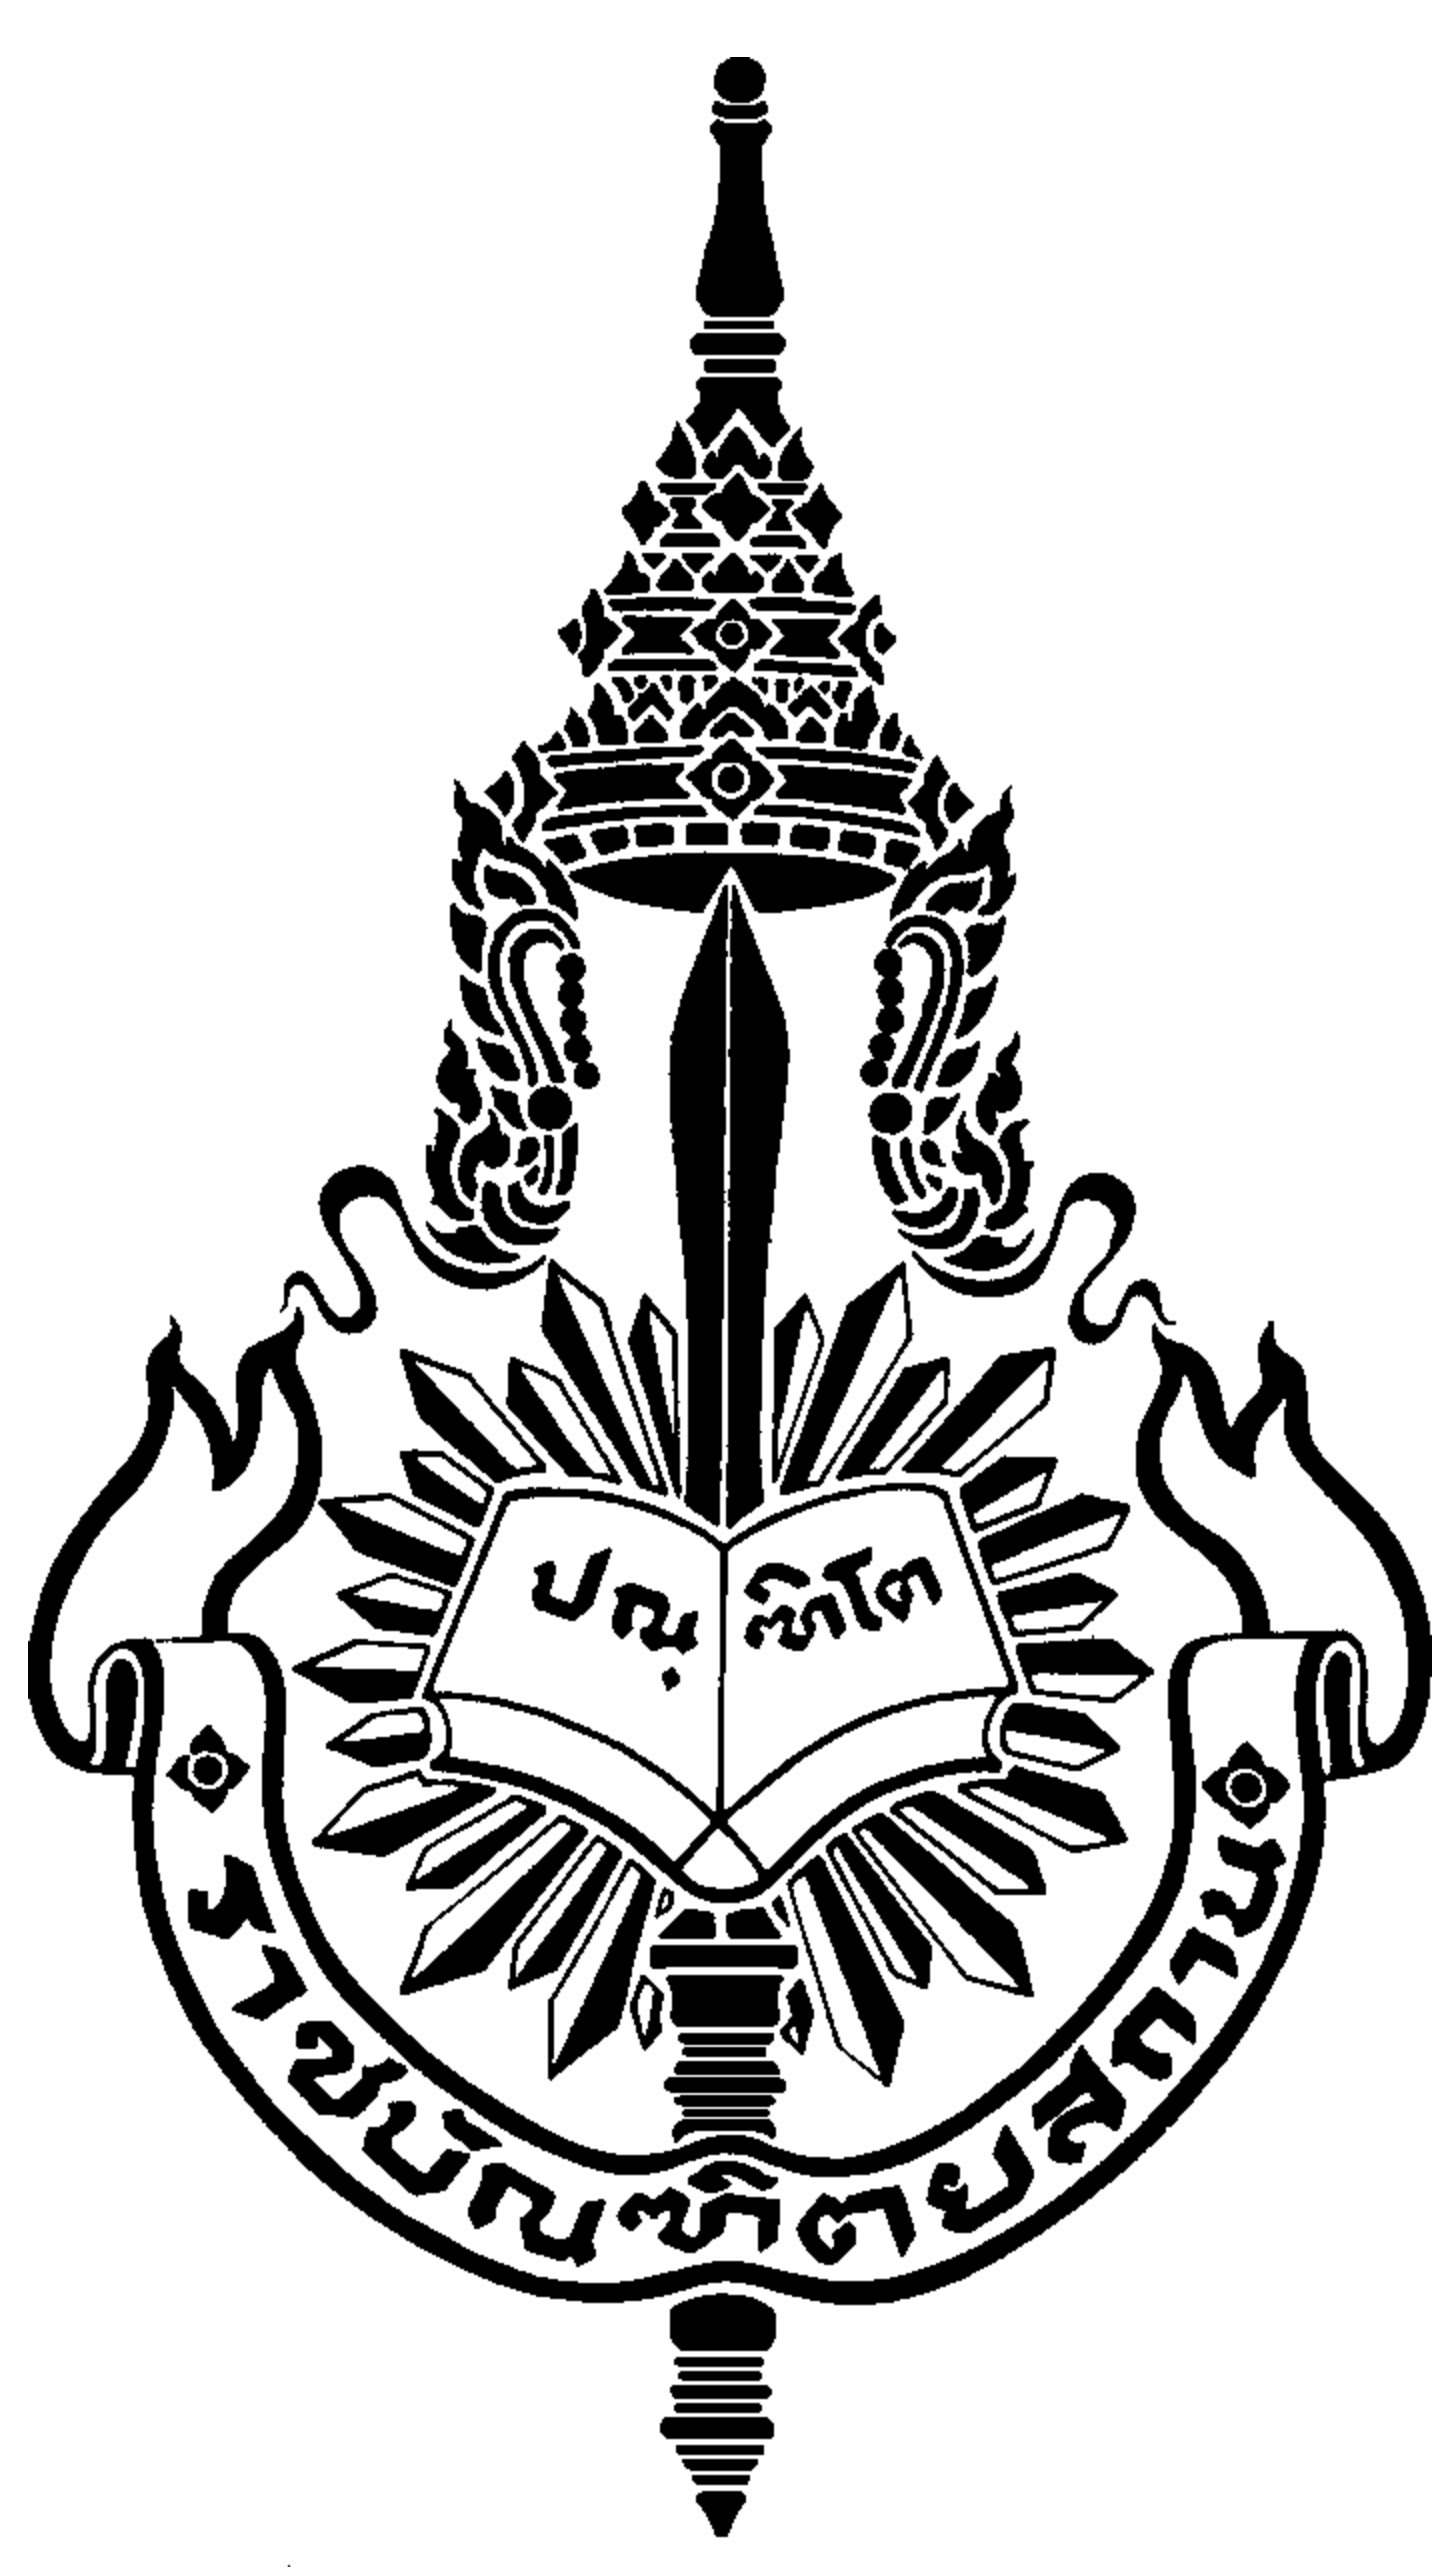 1456x2576 Fileroyal Institute Of Thailand Seal.jpg